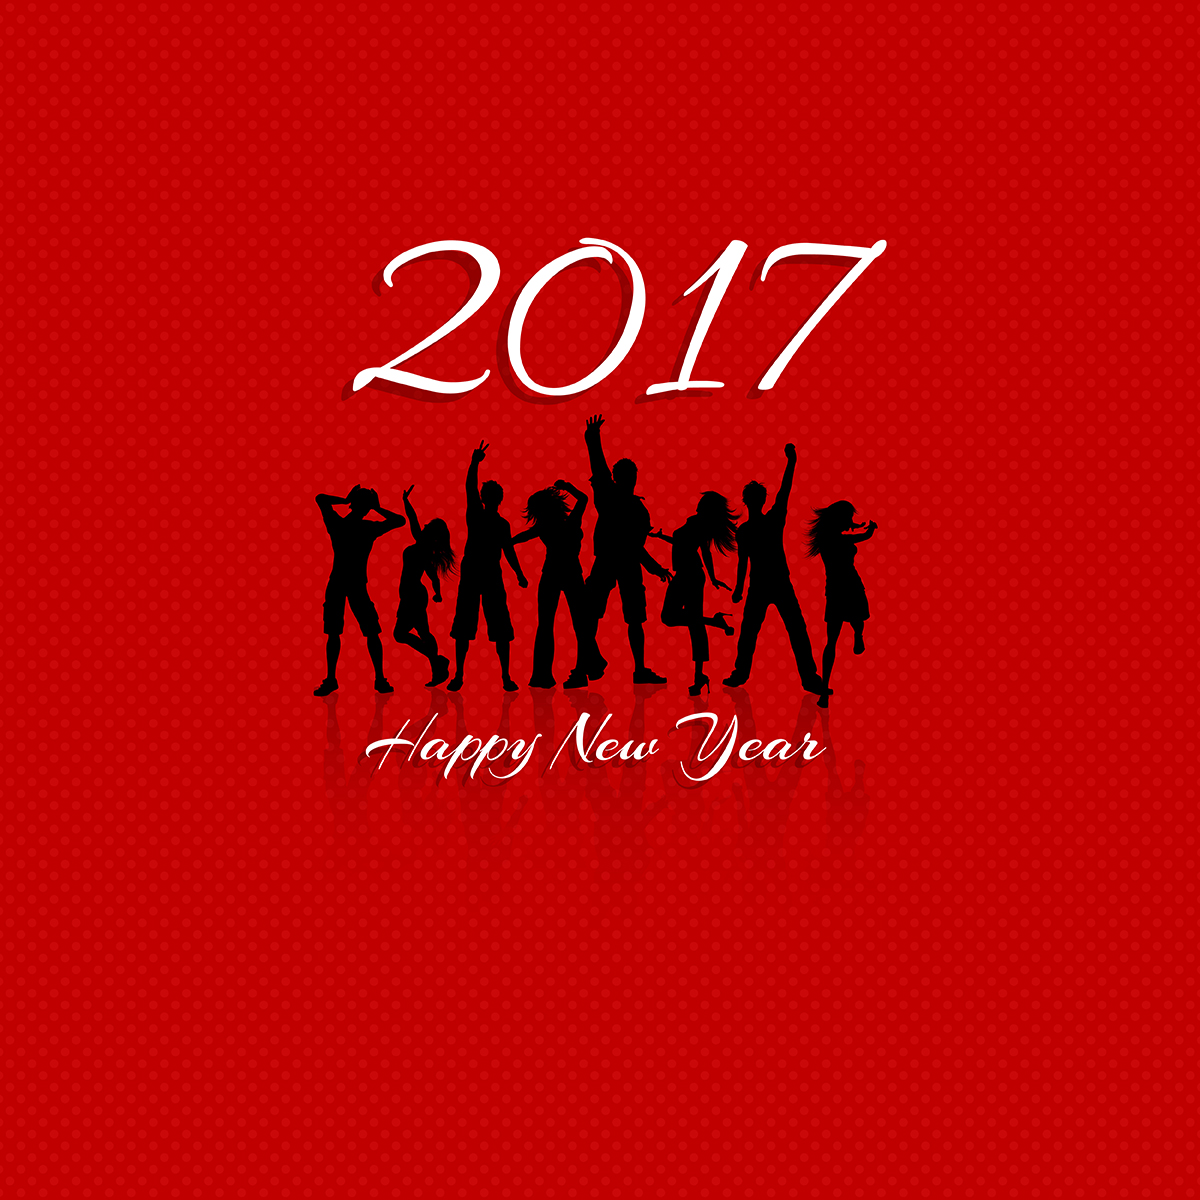 Happy New Year 2017 Messages For Family